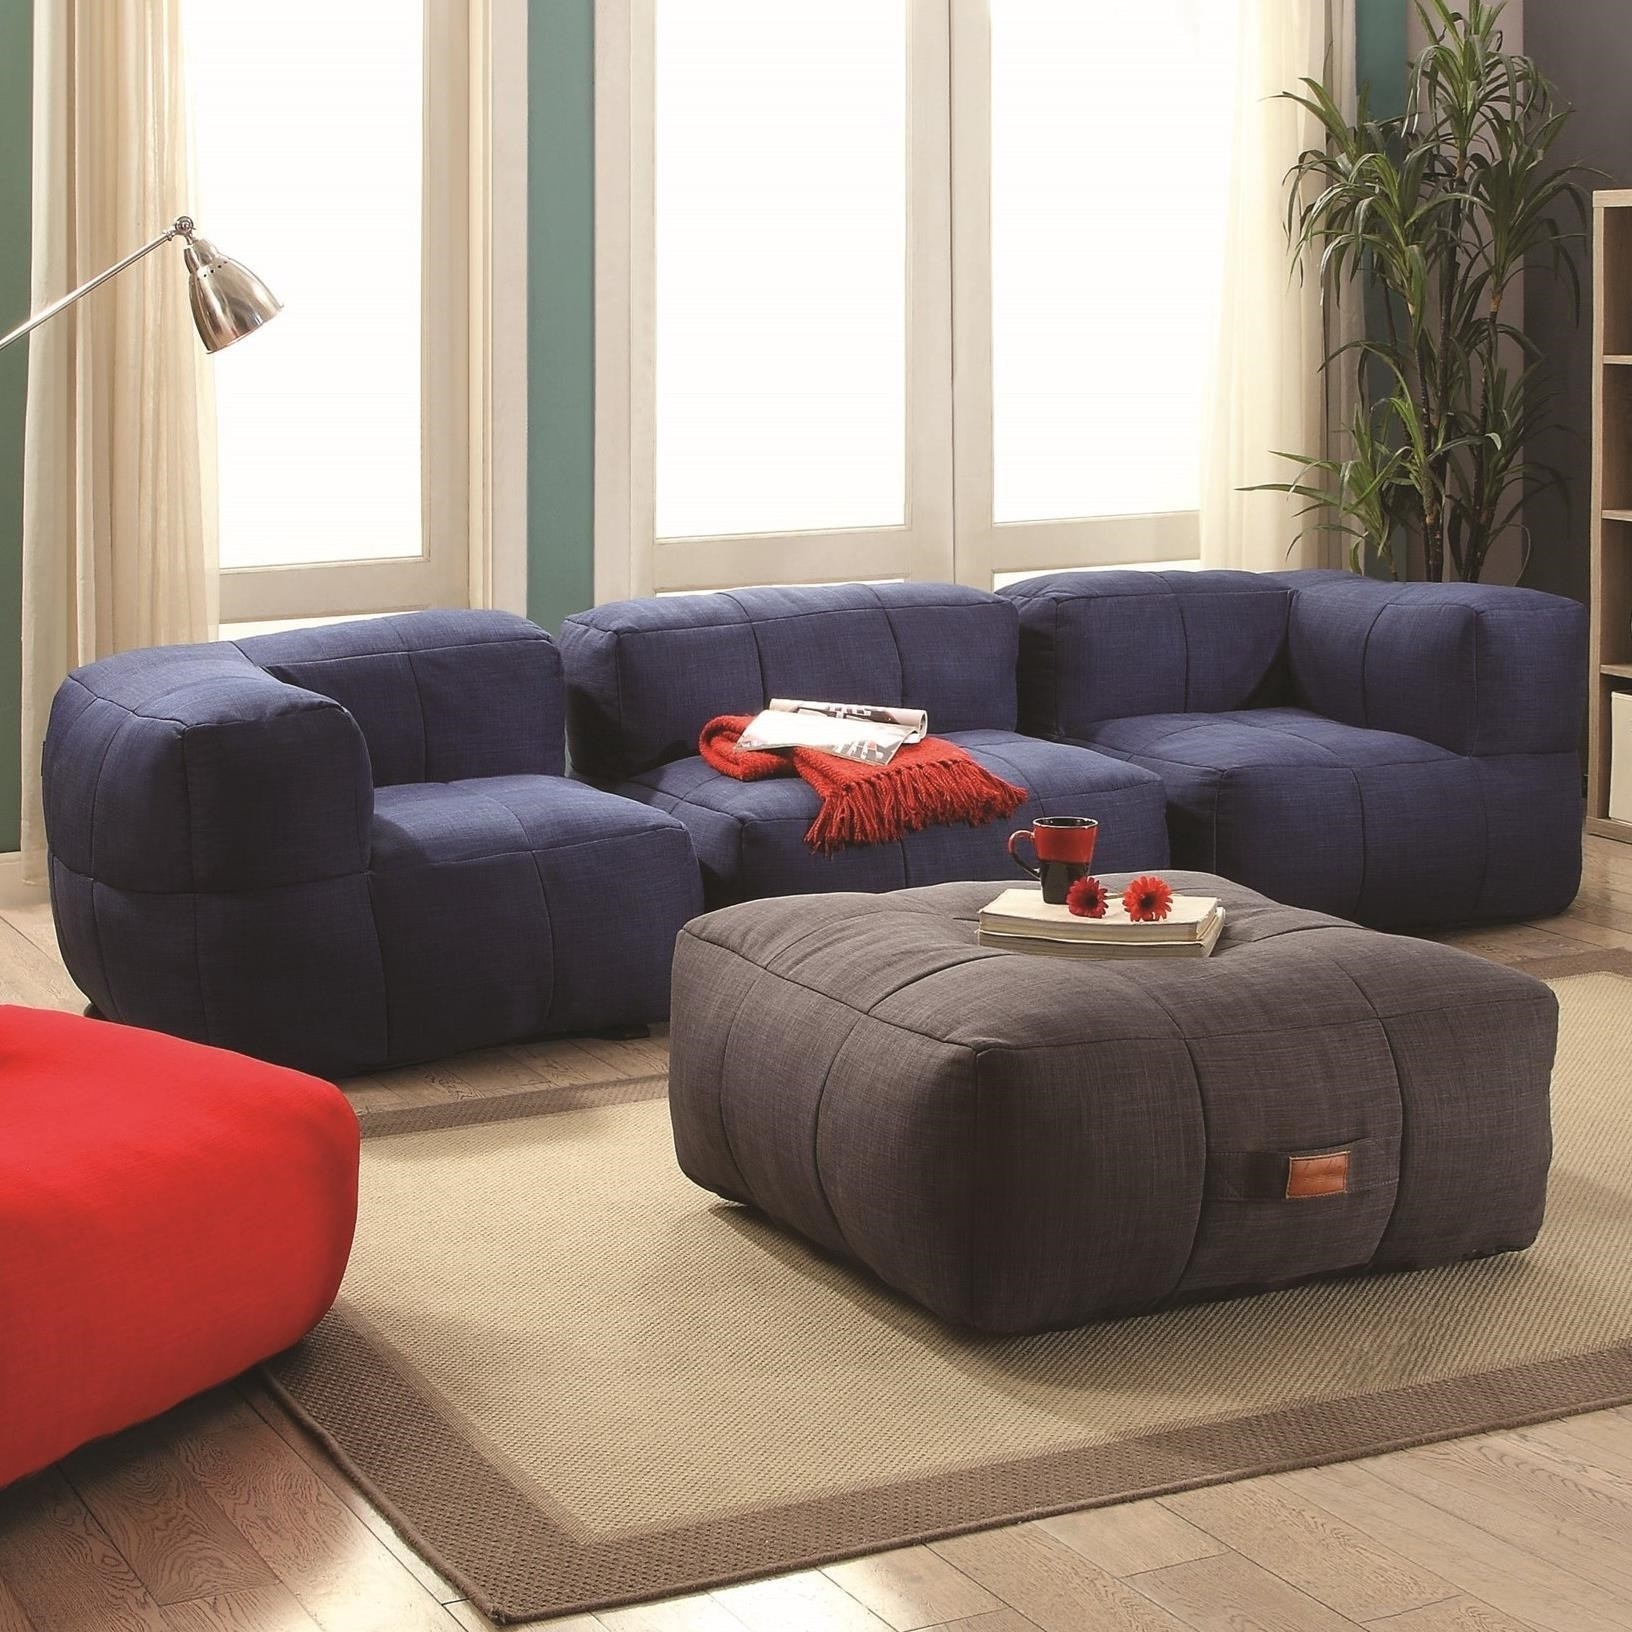 Featured Image of Nj Sectional Sofas